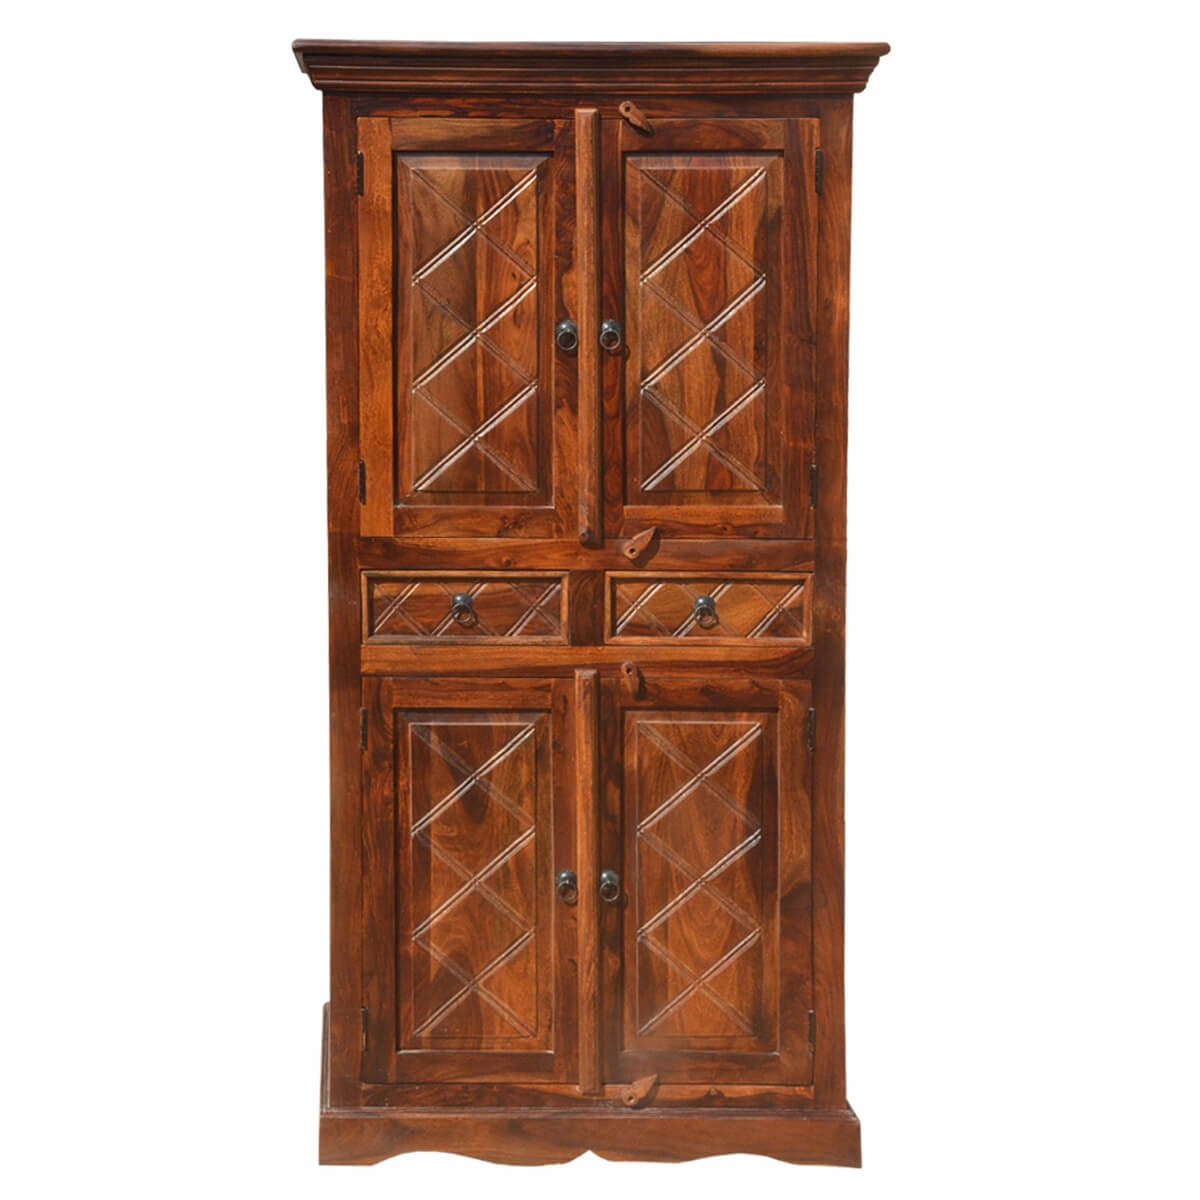 Wooden Wardrobe Cabinet ~ Rustic wood storage drawers cupboard wardrobe armoire